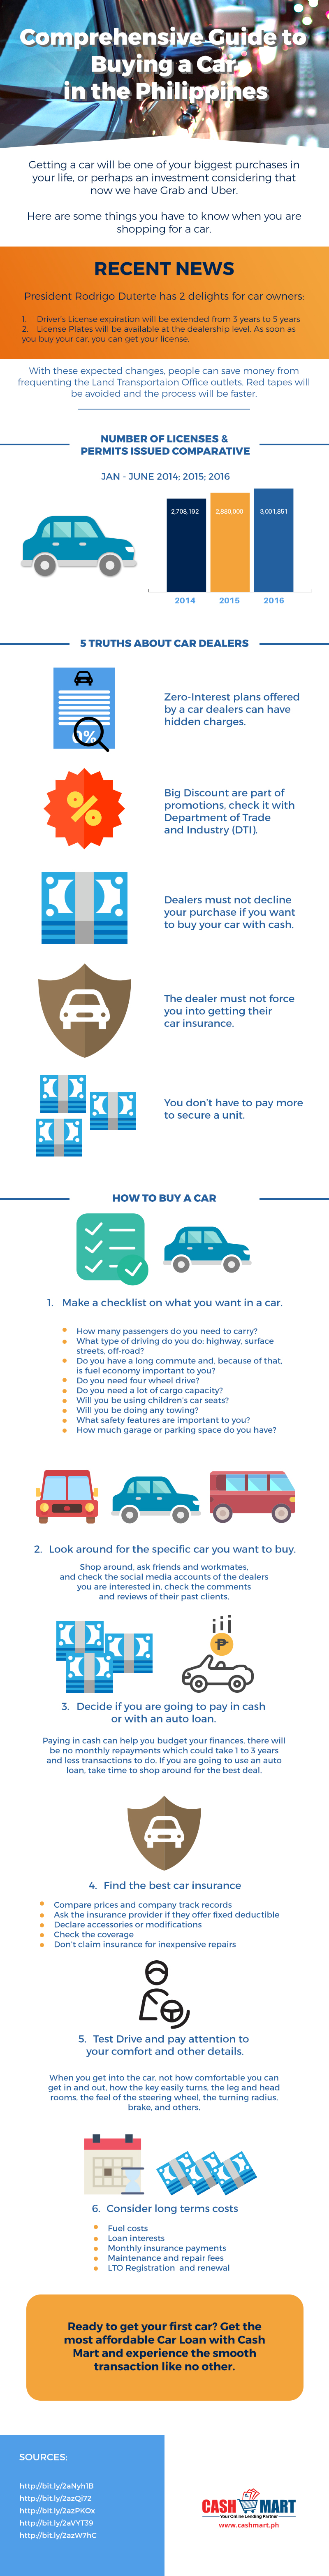 comprehensive-guide-to-buying-a-car-in-the-philippines